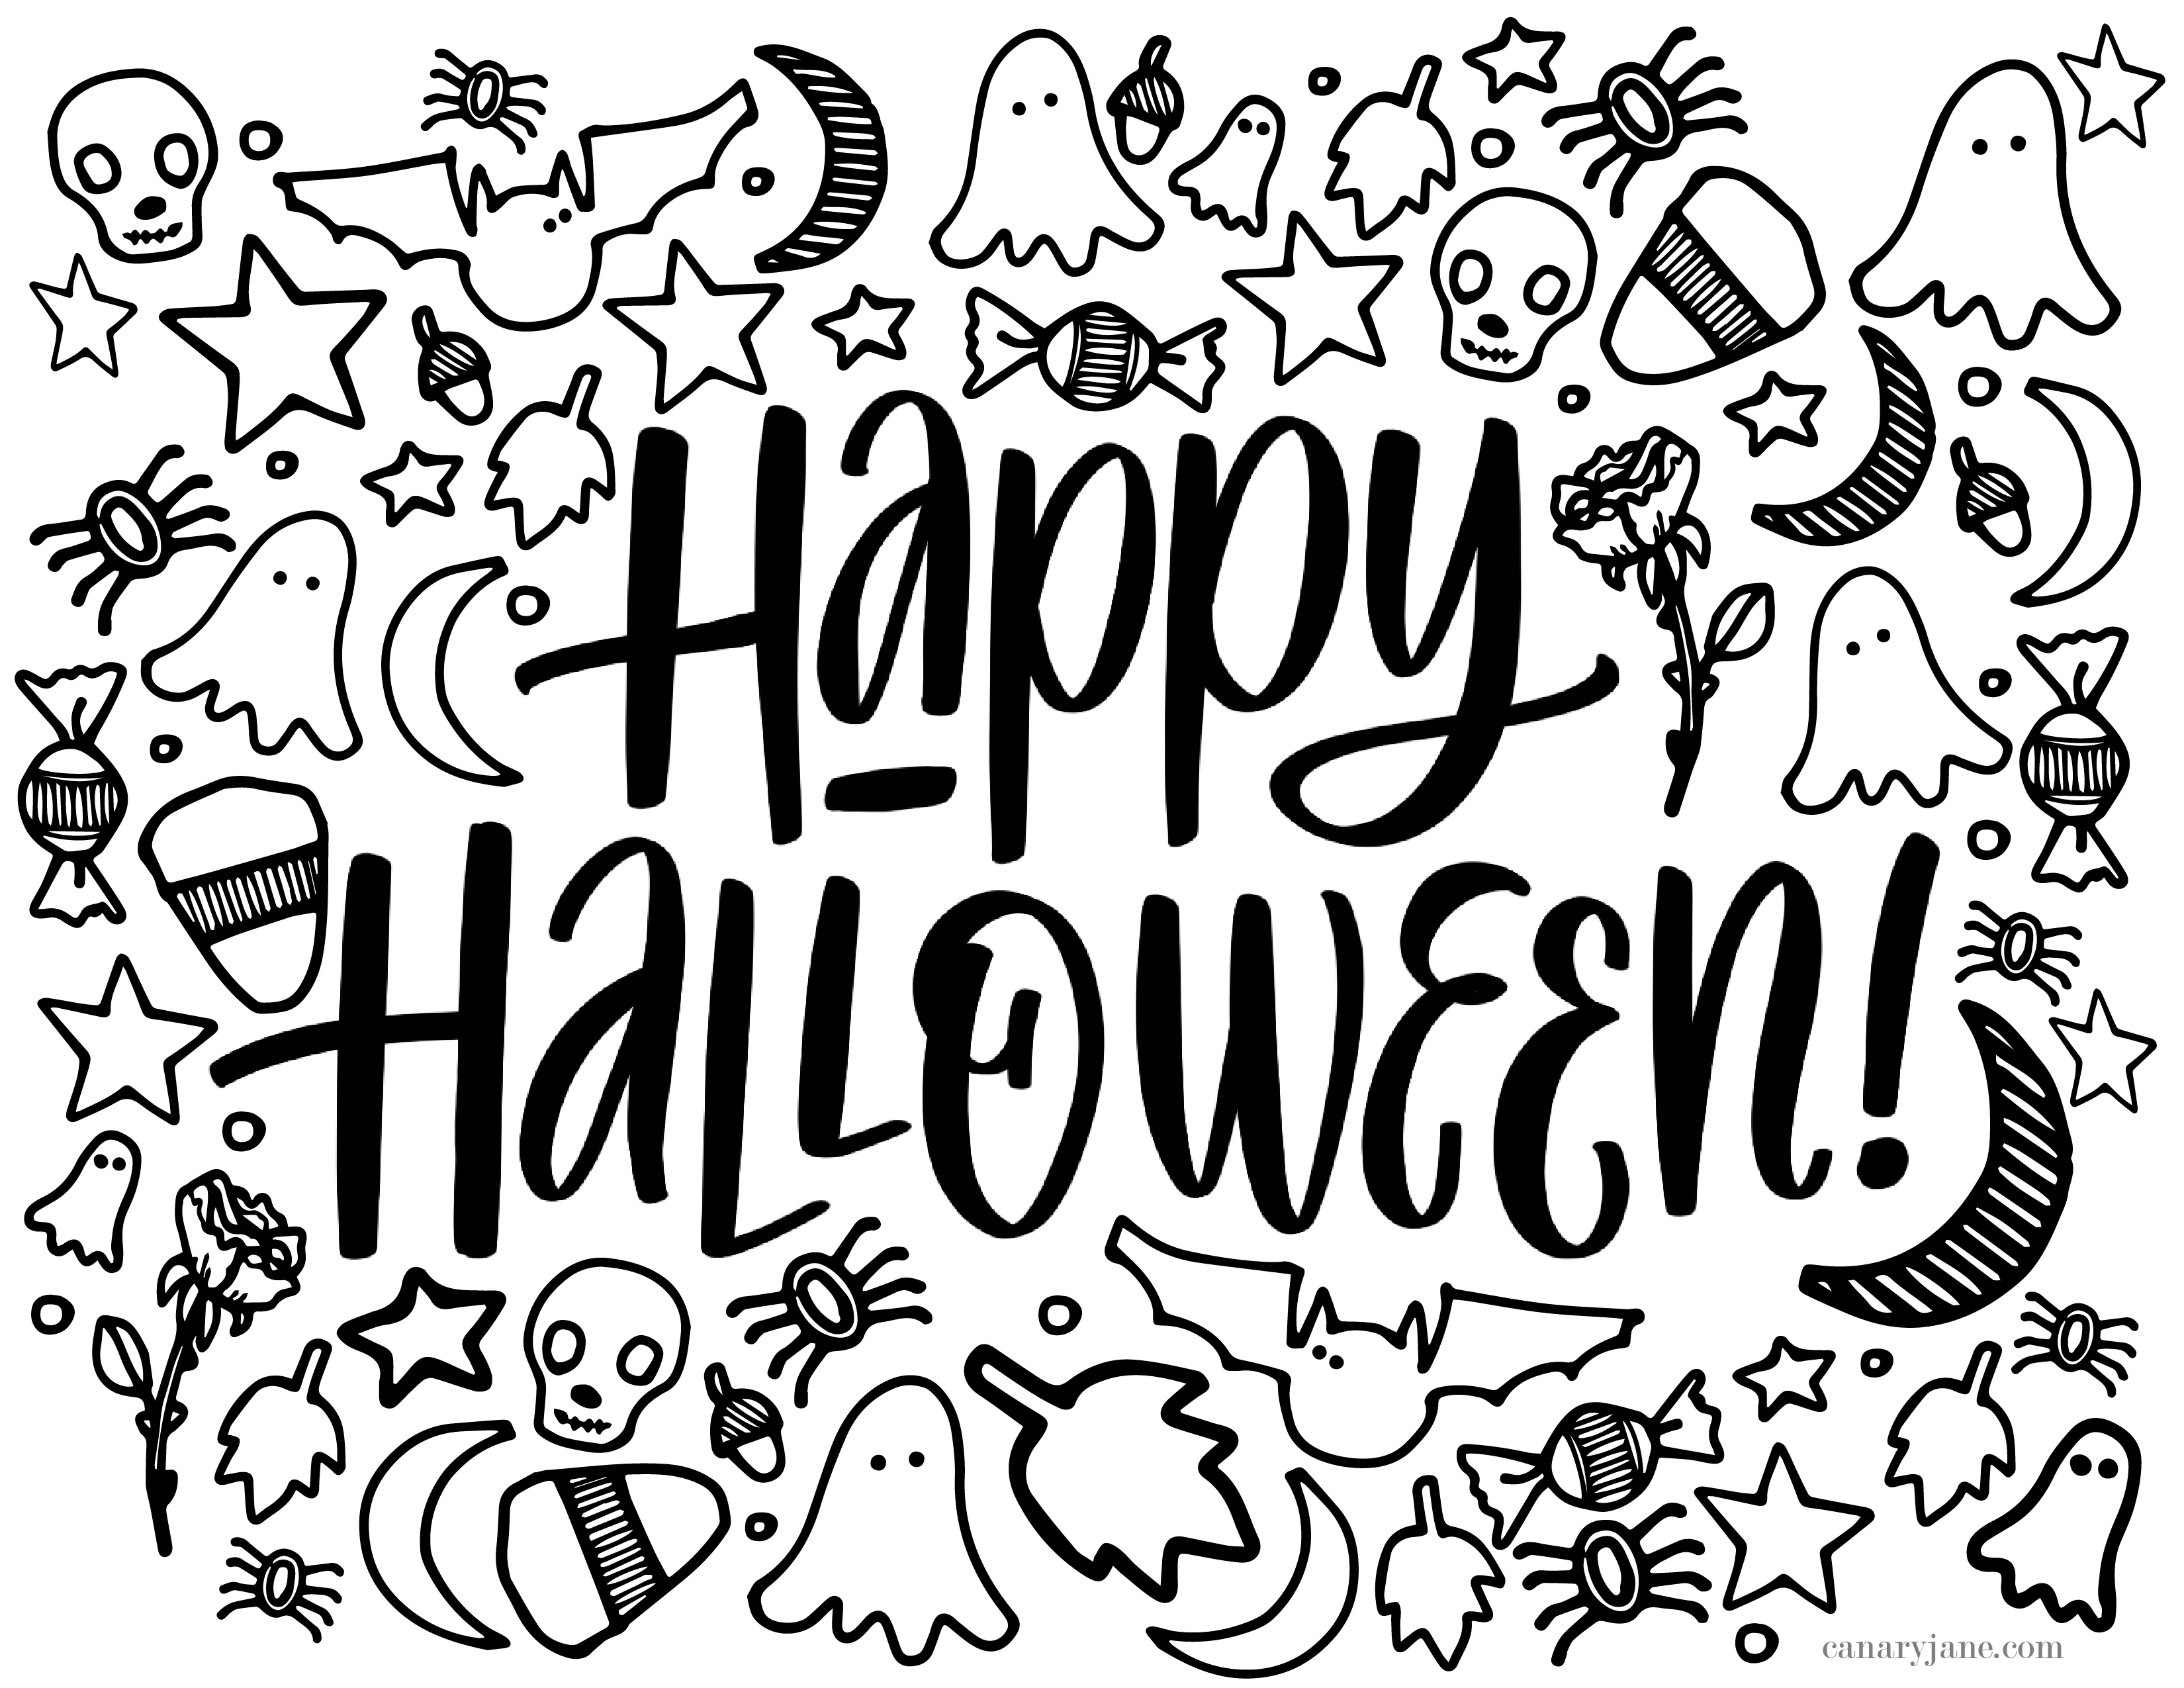 coloring templates halloween halloween coloring pages 10 free spooky printable halloween templates coloring